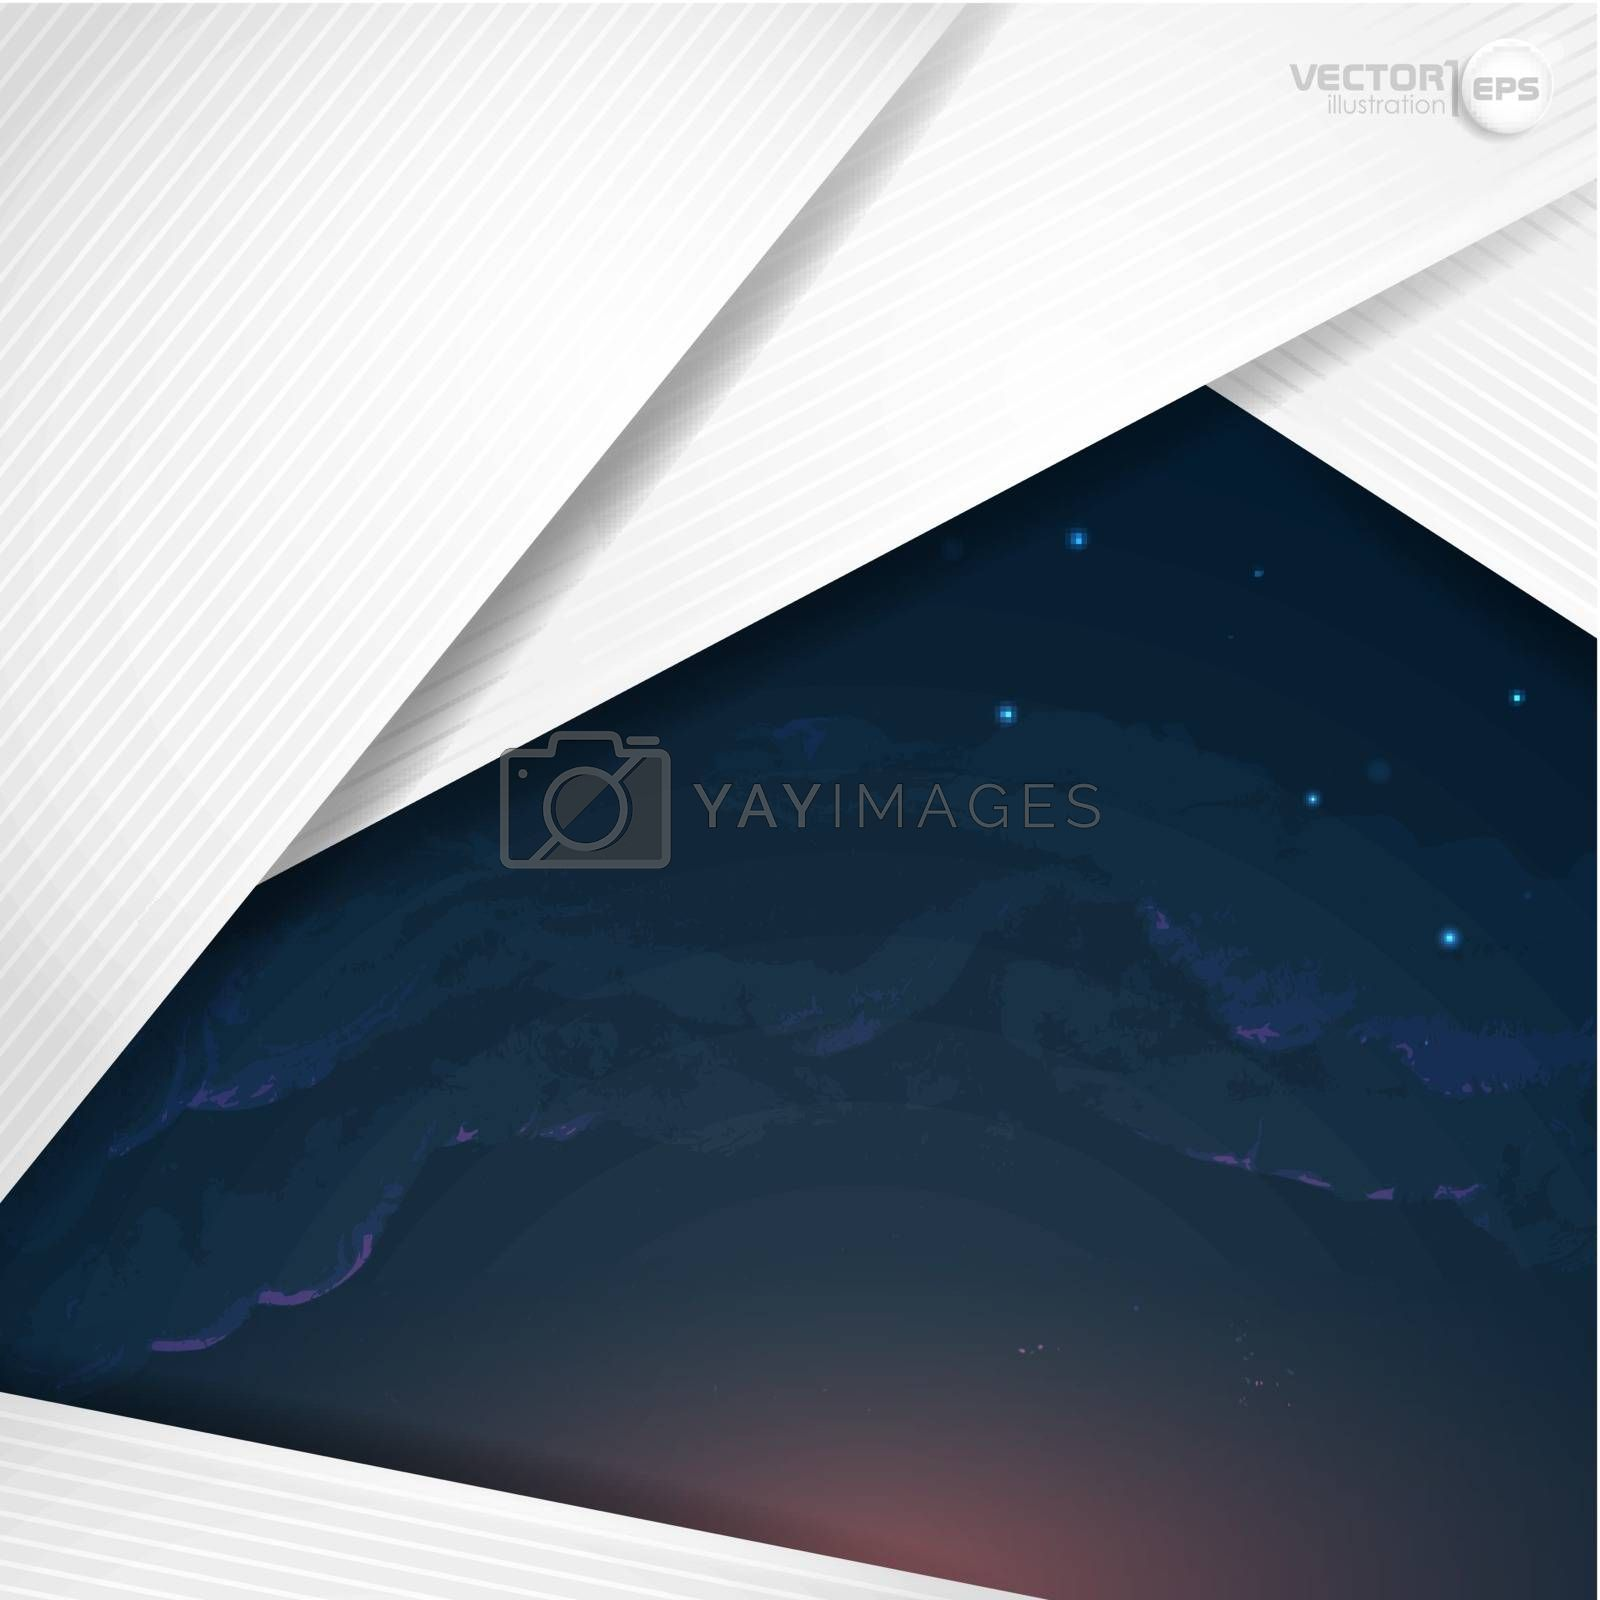 Abstract Background With White Paper Layers. Vector Illustration. Eps 10.